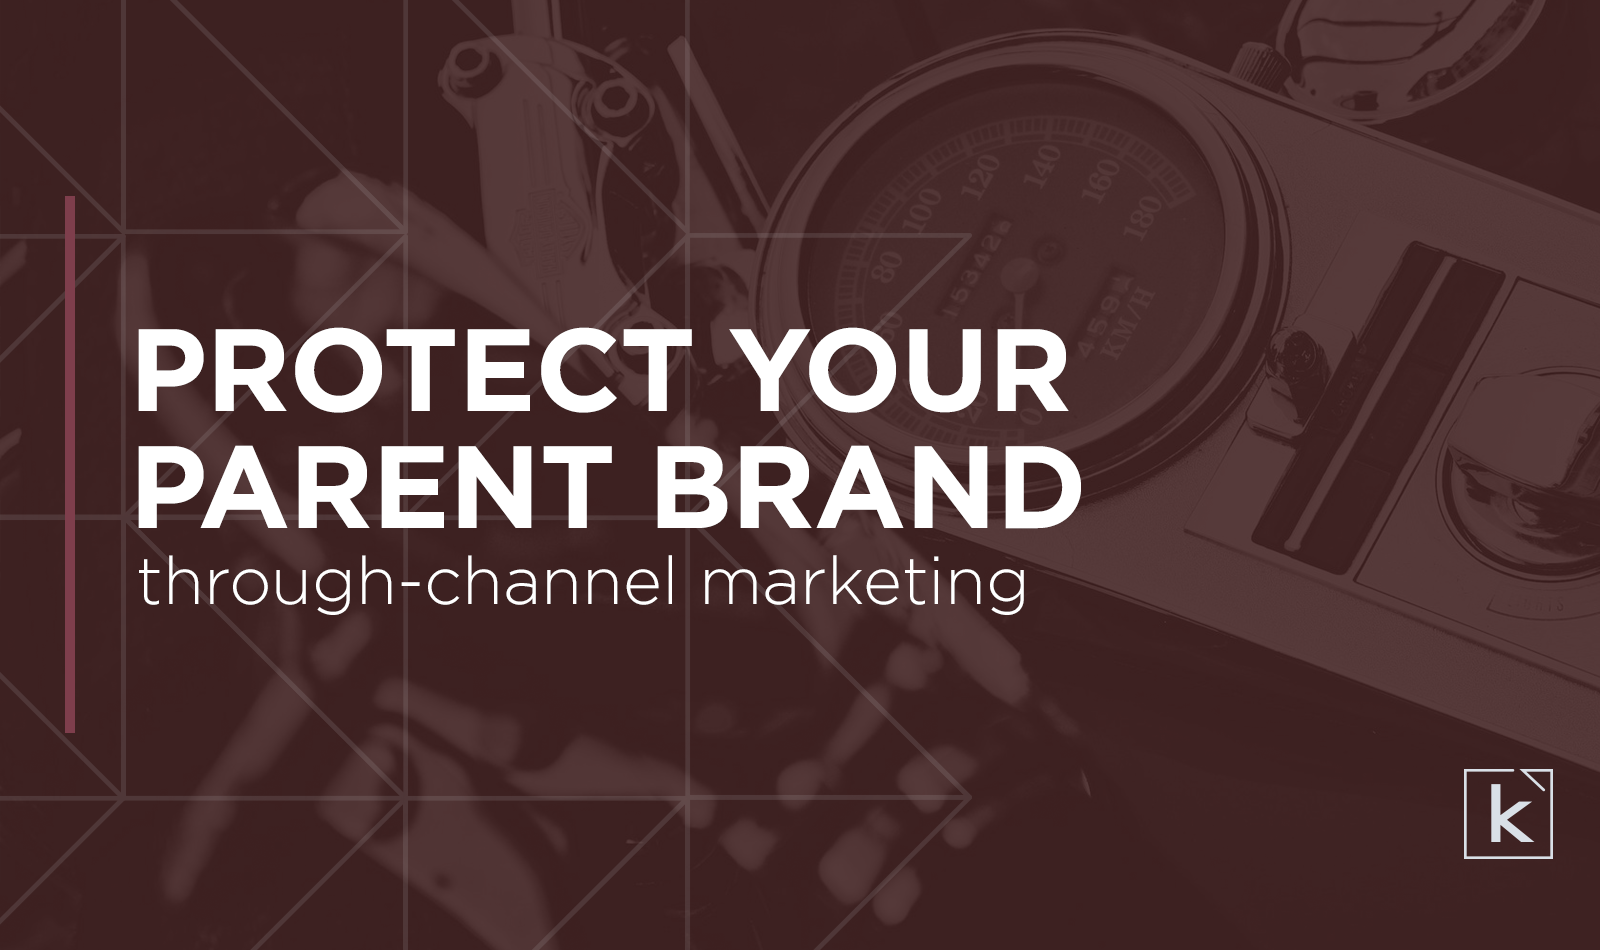 through-channel-marketing-protect-your-parent-brand-close-up-harley-davidson